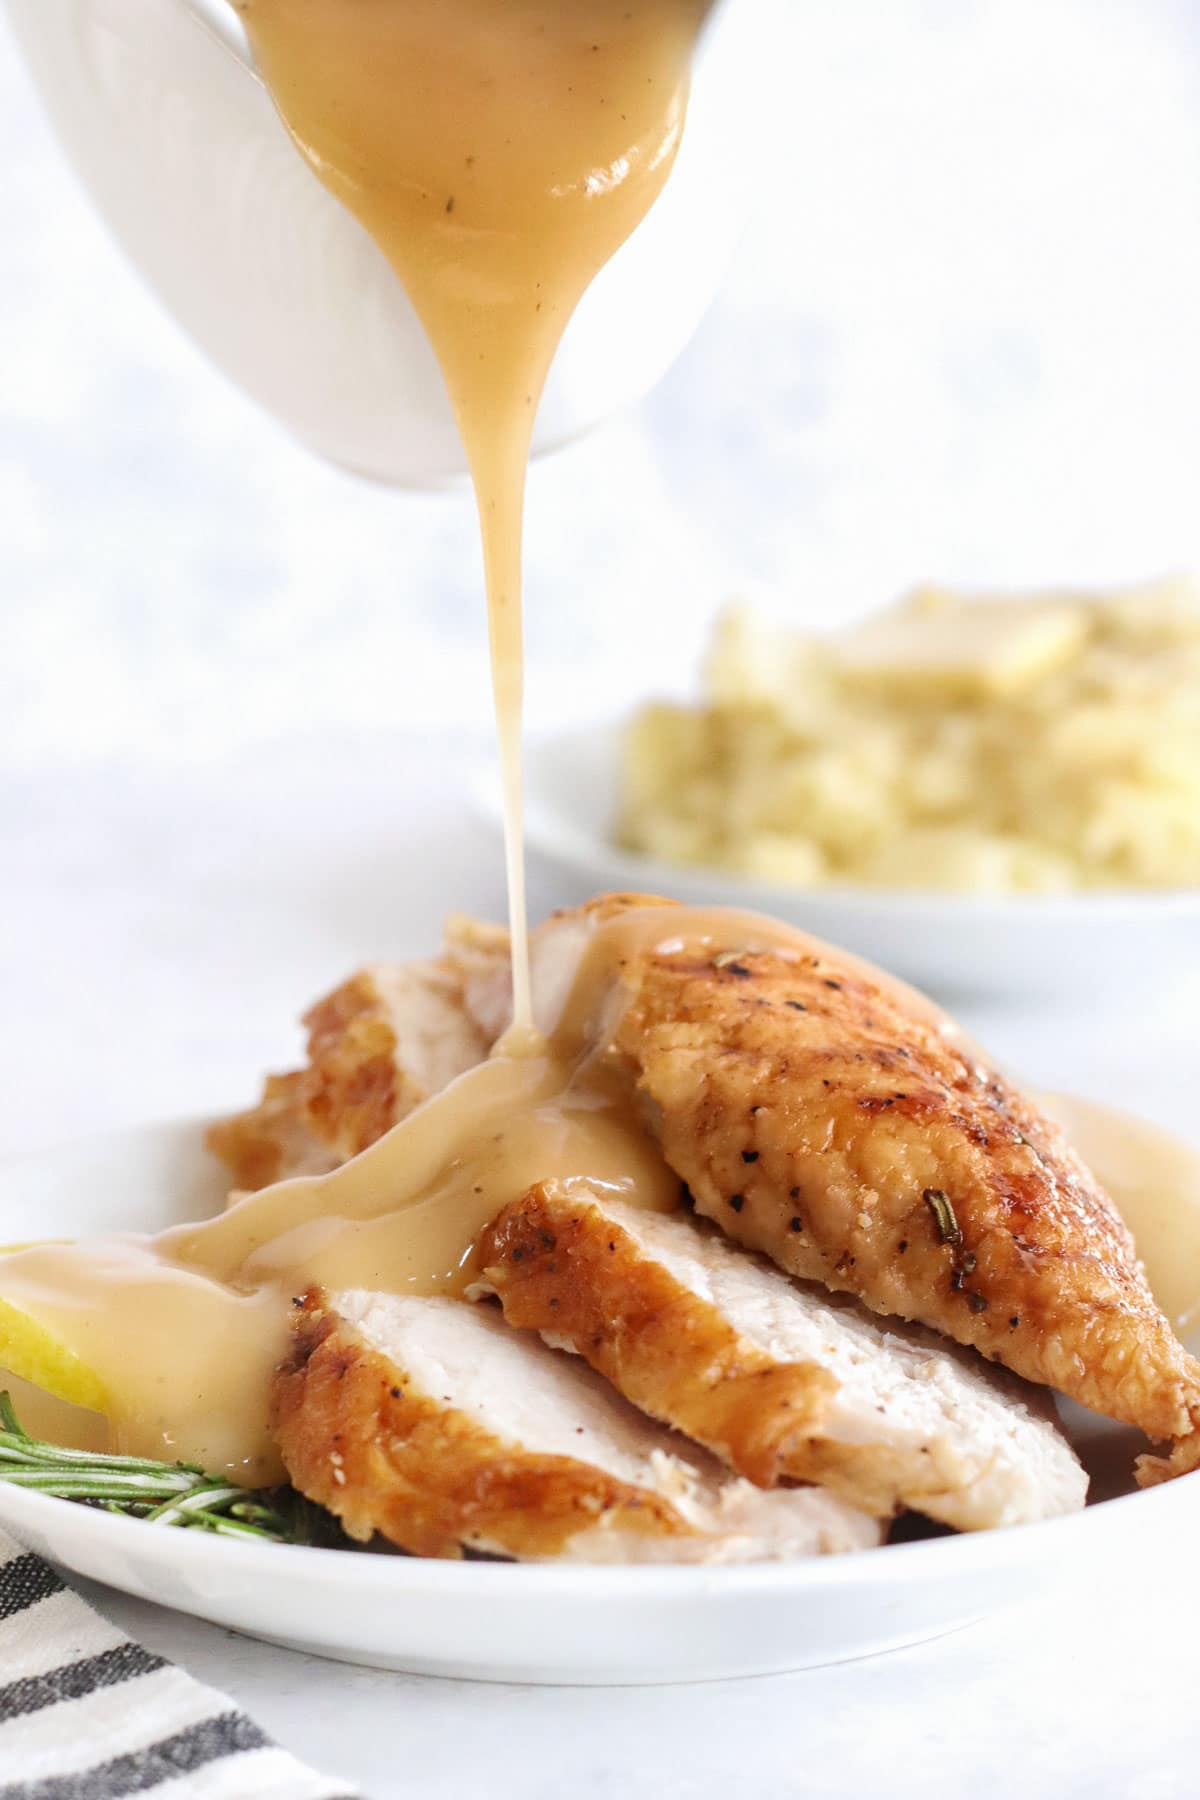 Sauce being poured onto sliced turkey breast on a plate